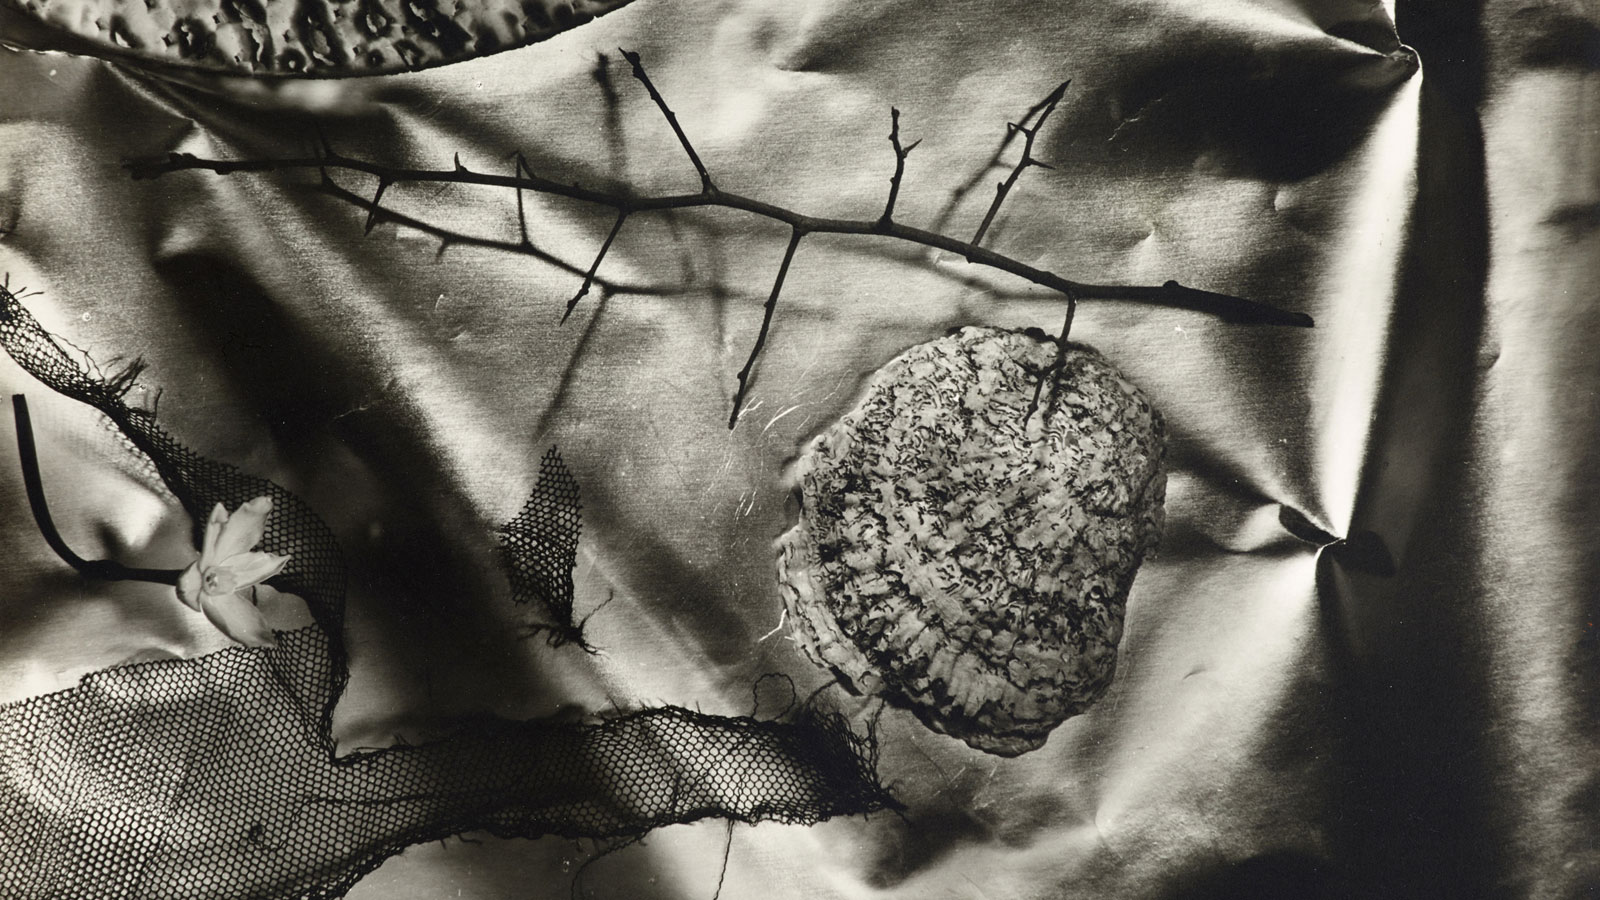 Alfred Ehrhardt Foundation | »NAUTILUS. Snails, Mussels, And Other Mollusks In Photography«